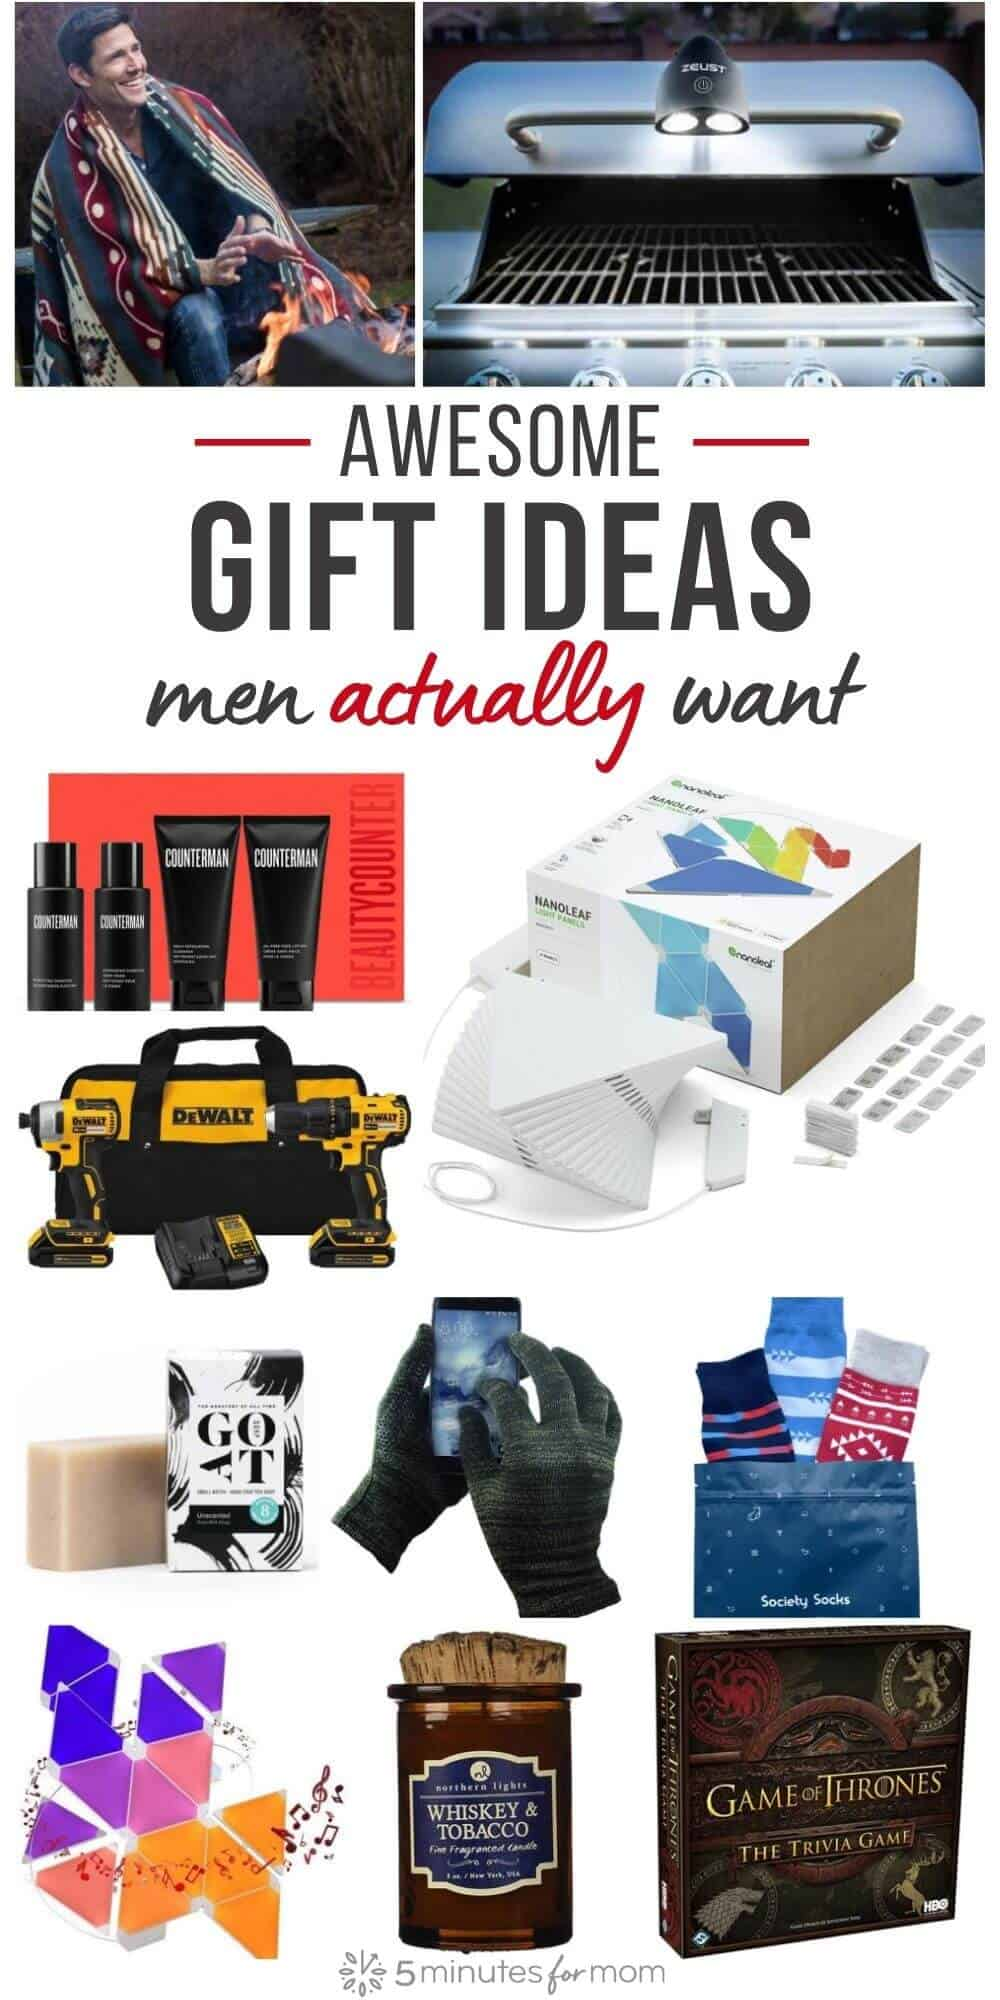 Gift Ideas for Him - Christmas Gifts for Men